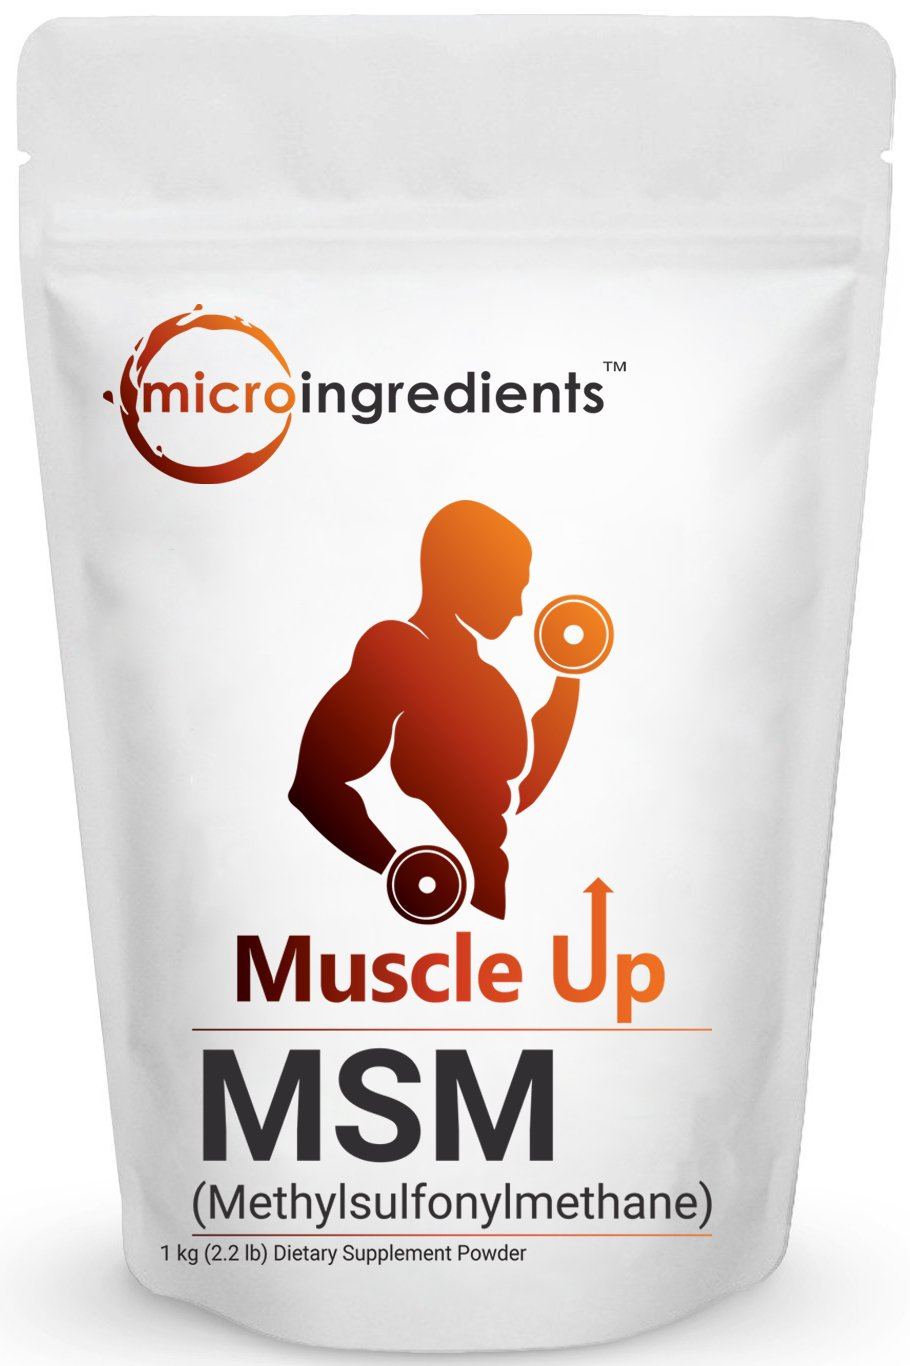 Pure MSM Powder (Methysulfonylmethane) , 1KG (2.2 LB), Powerfully Supports the Health and Vitality of Skin, Hair, Nails, Bones, Cartilage and Joints. Non-GMO and Gluten Free.